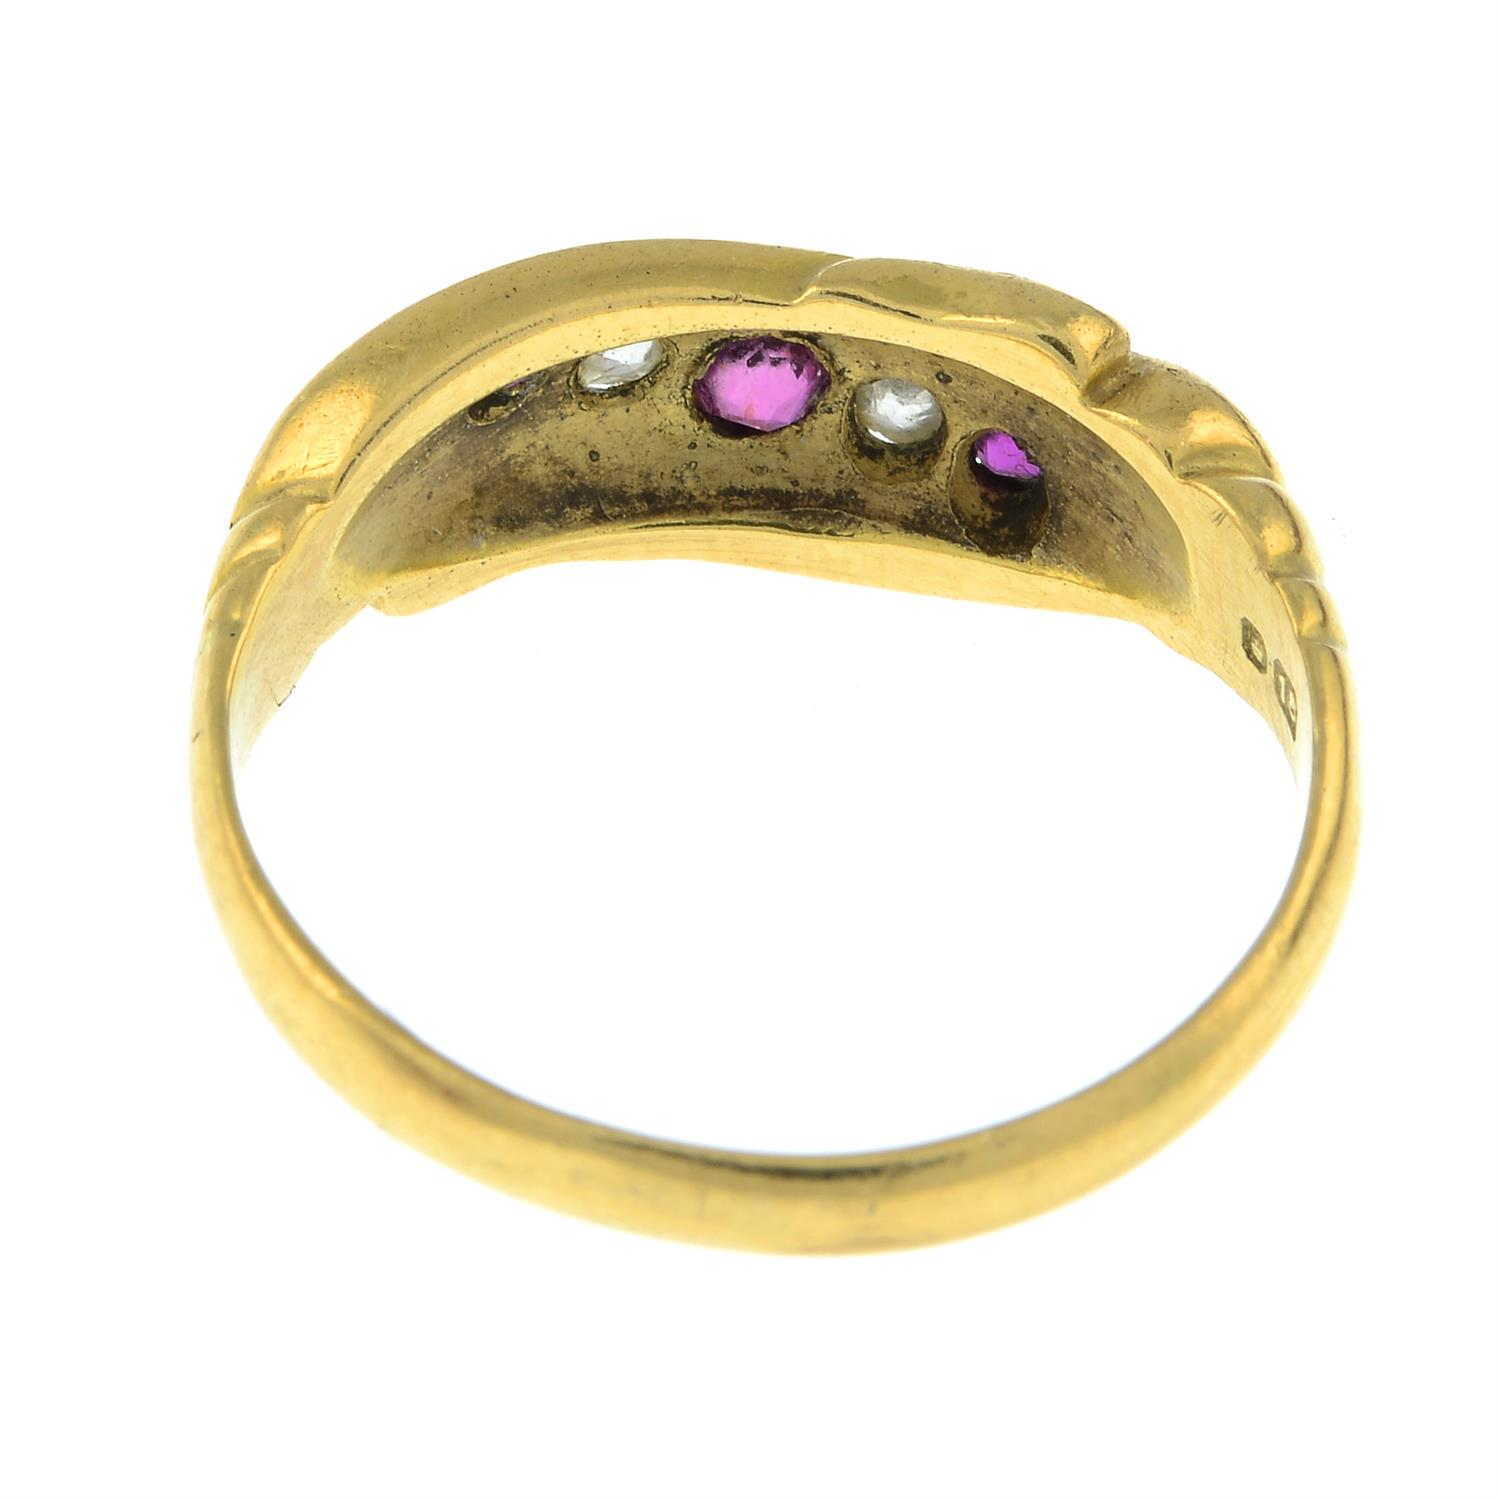 An early 20th century 18ct gold ruby and diamond five-stone ring. - Image 3 of 3